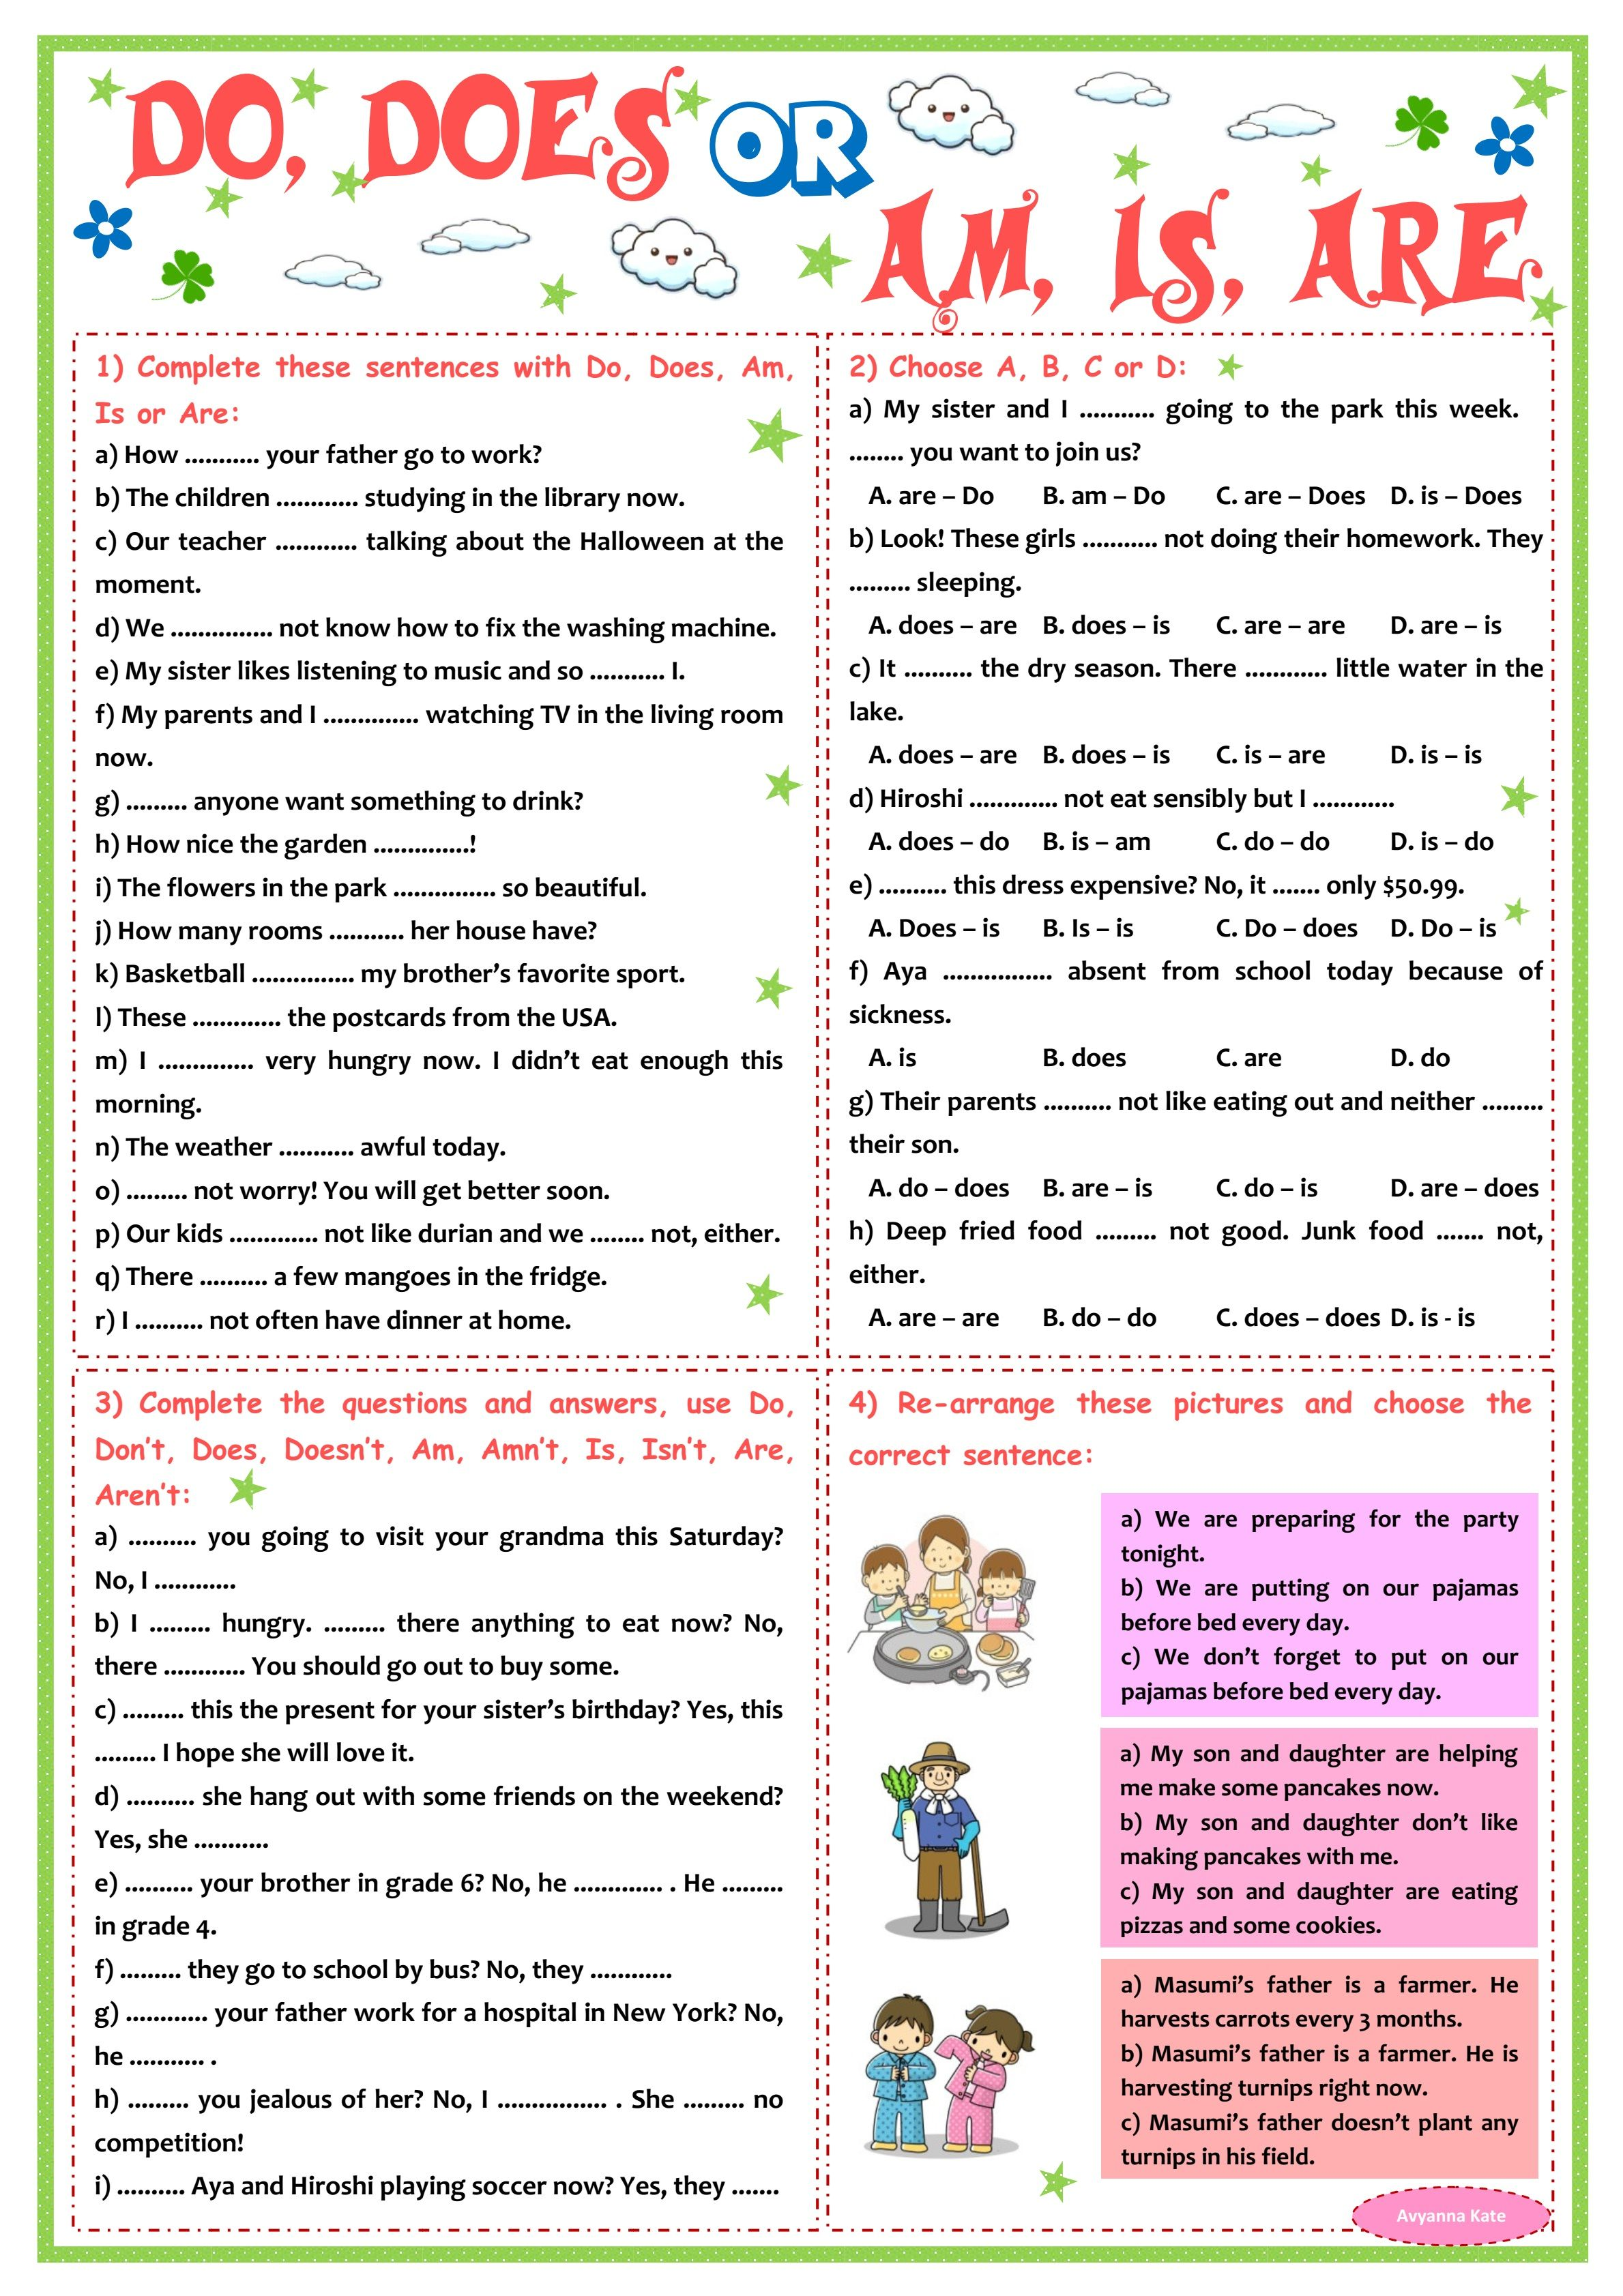 Do Does Vs Am Is Are Worksheet P5 In